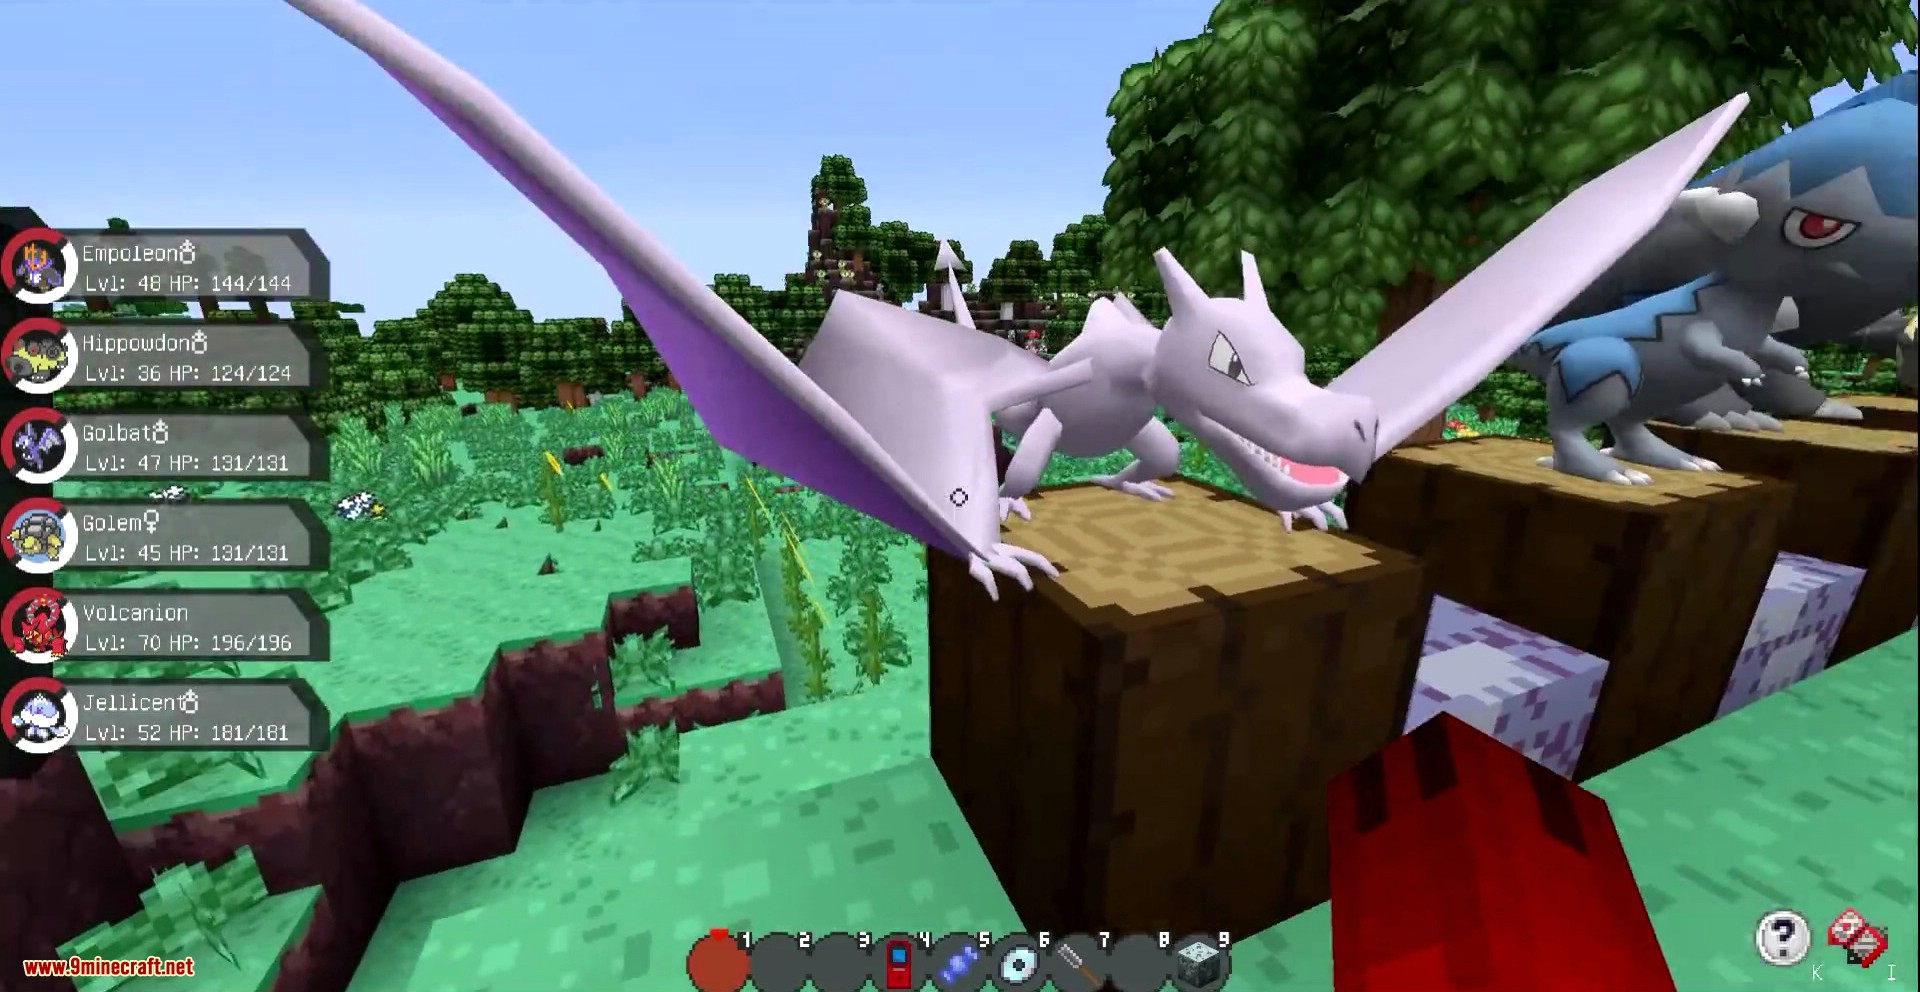 Pixelmon Mod Screenshots New 64